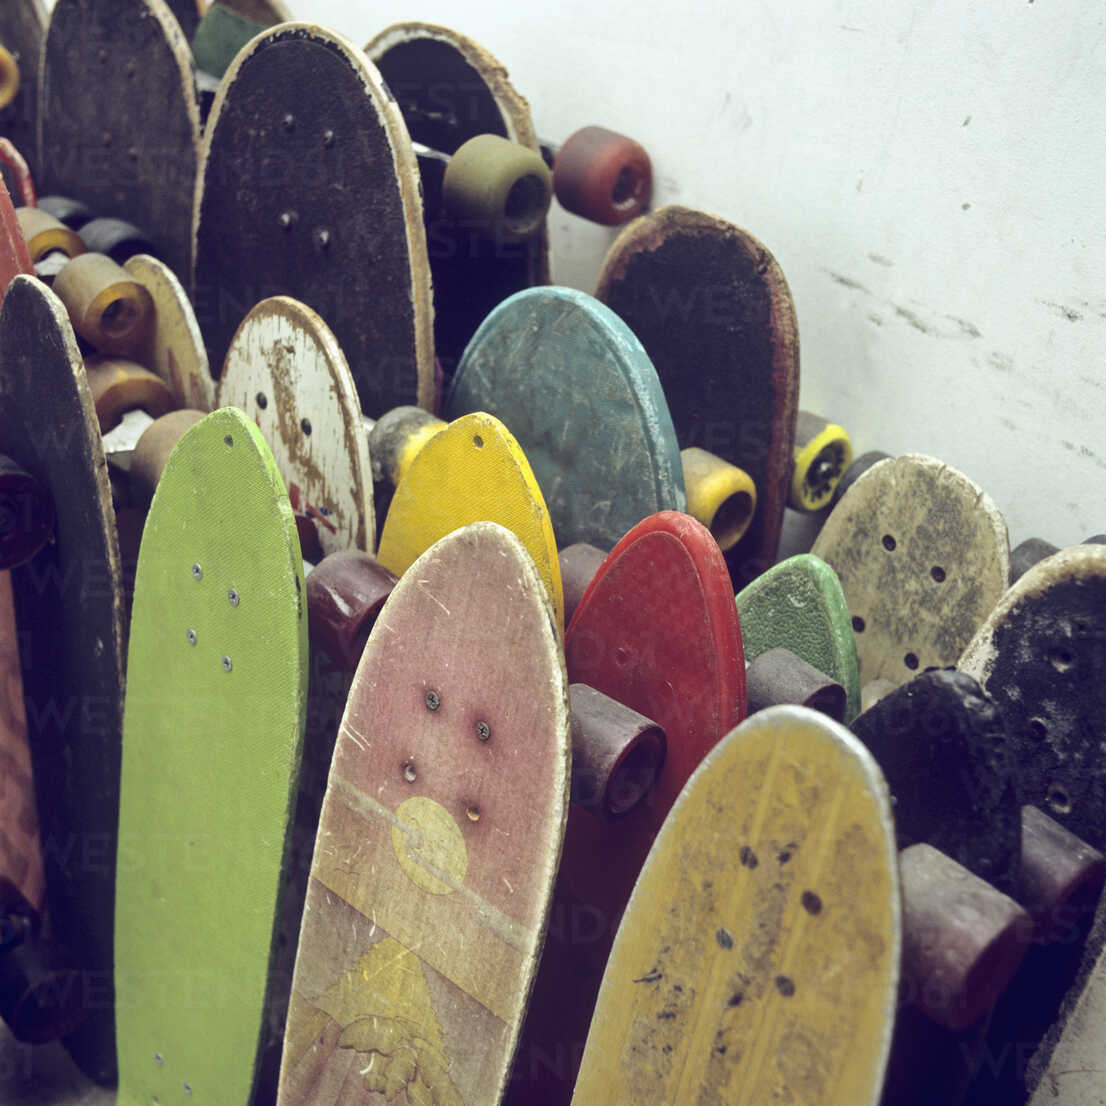 Rows of used skateboards leaning against a wall - FSIF00375 - fStop/Westend61